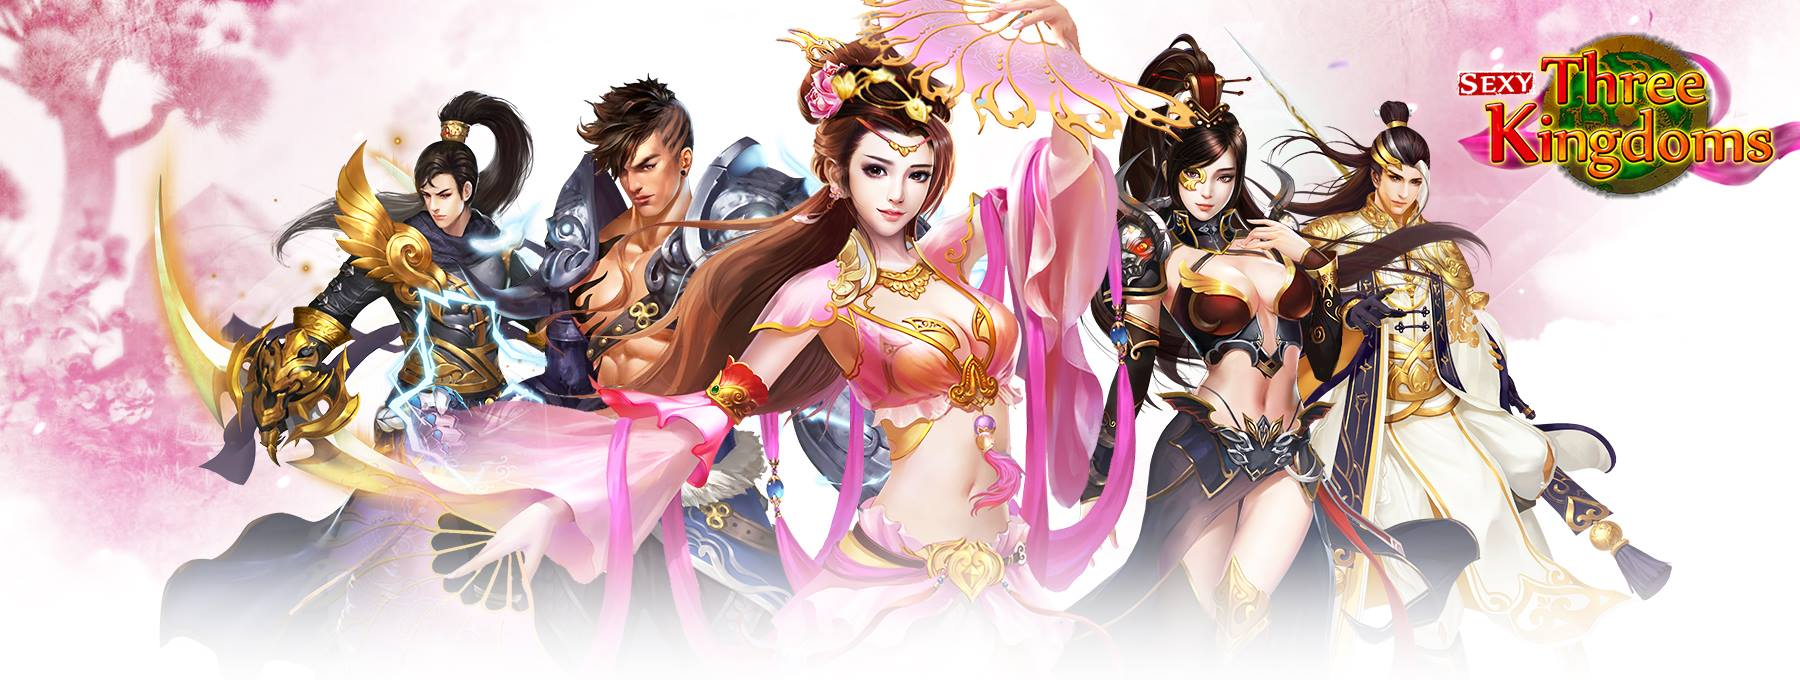 Sexy Three Kingdoms Official Website - 2020 most popular